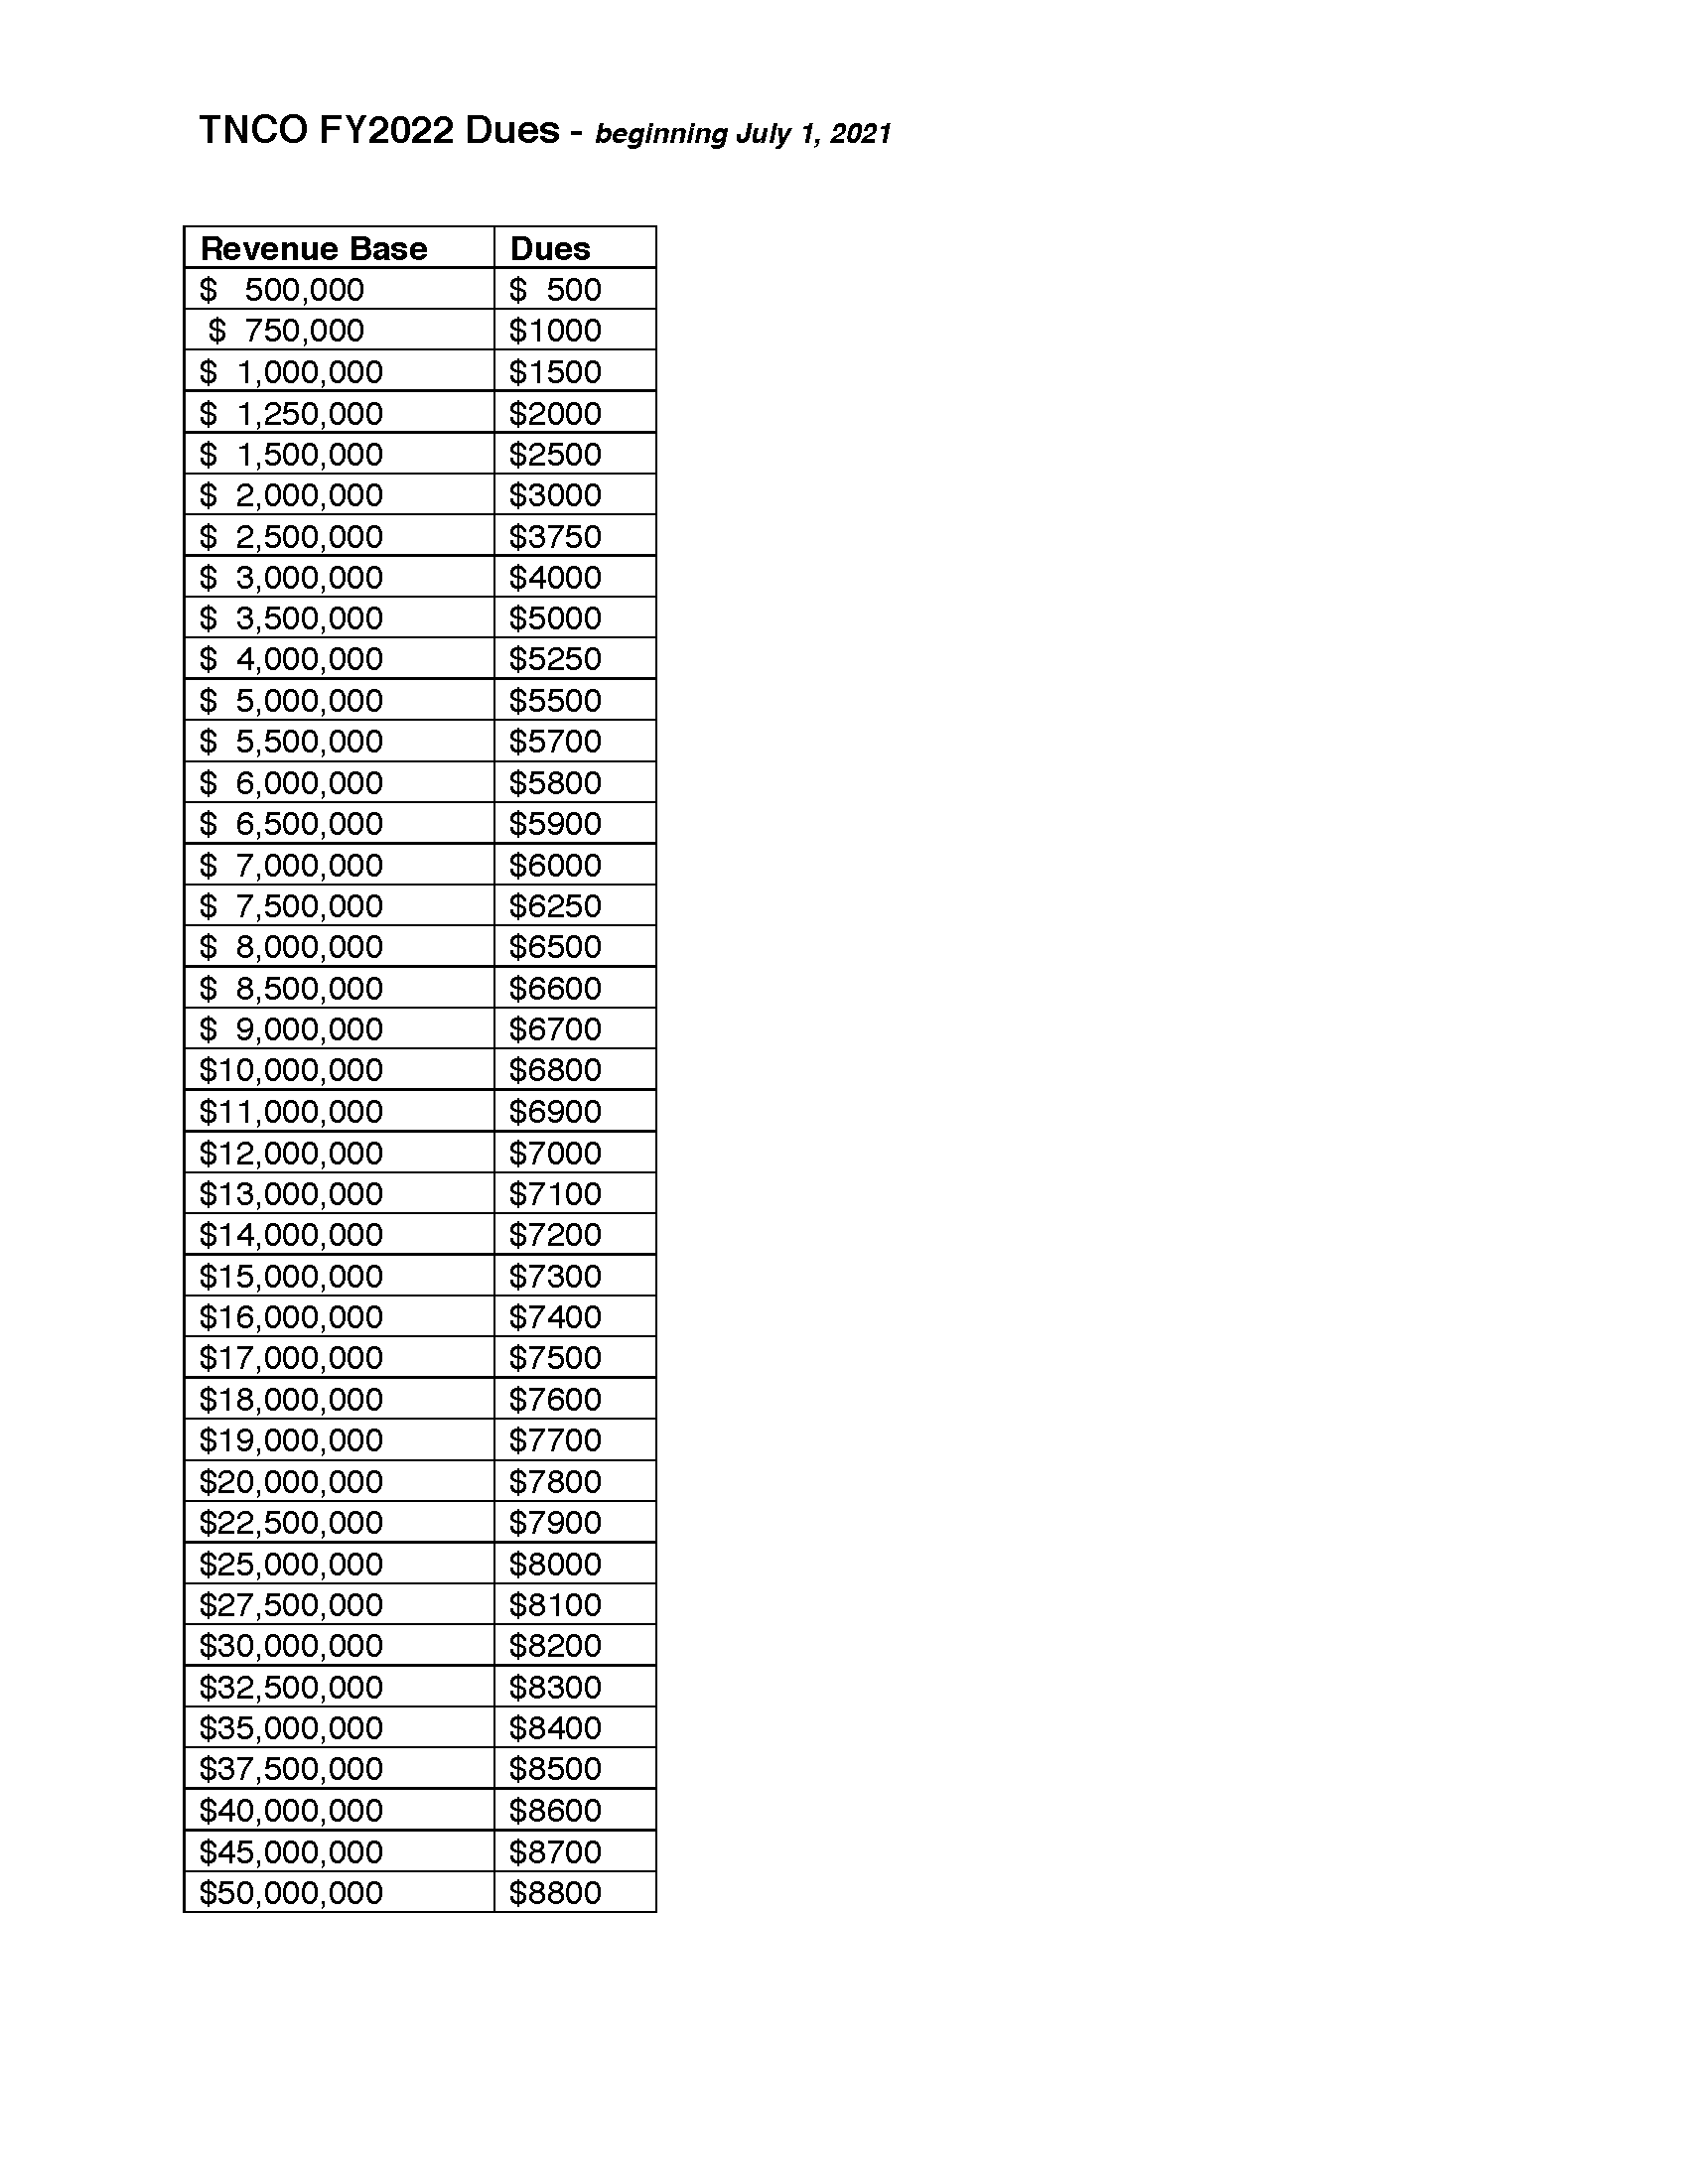 TNCO FY2022 Dues Chart